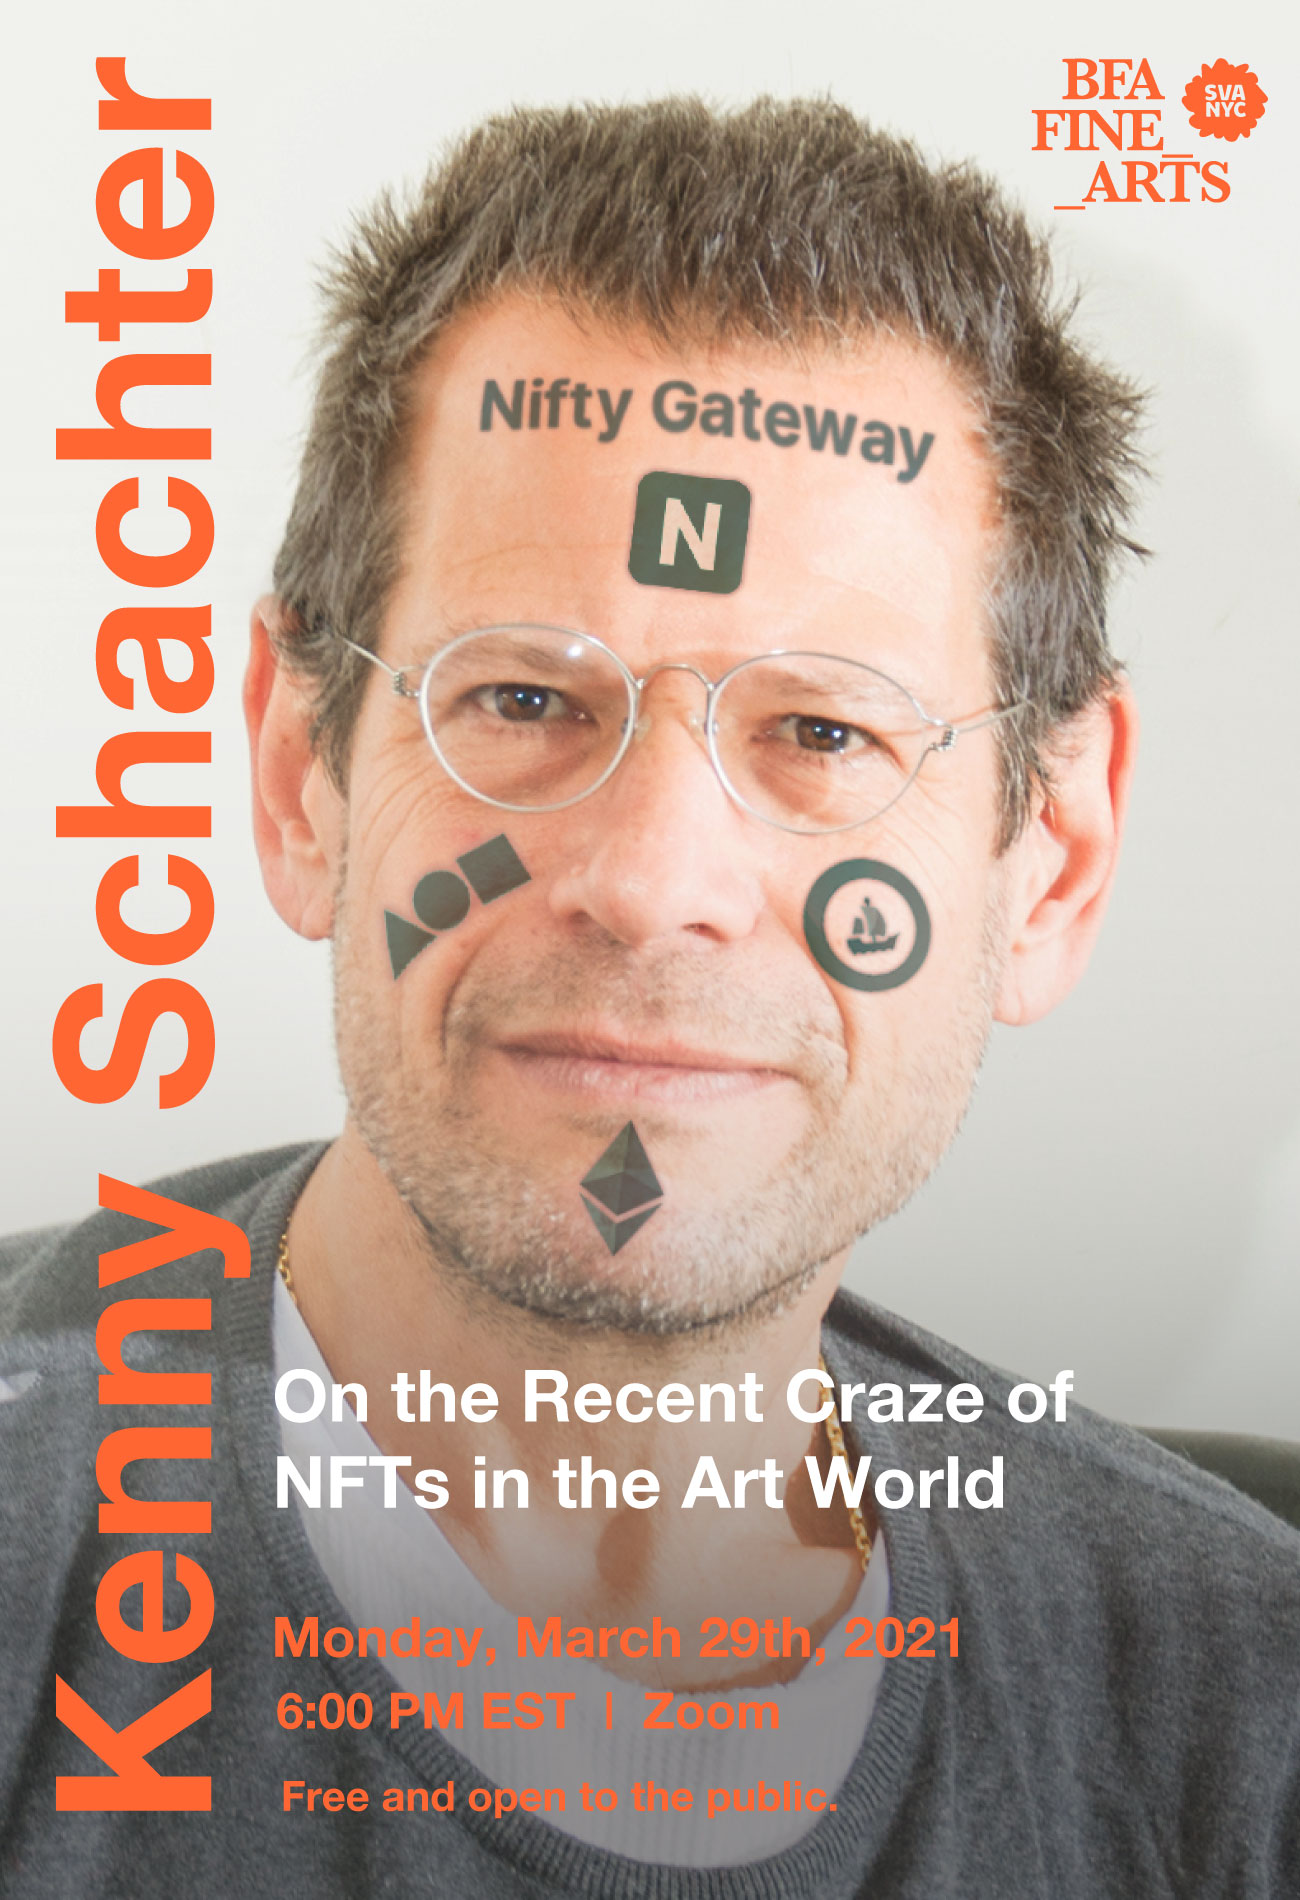 """A photograph of artist, writer and critic, Kenny Schachter. The photograph is a headshot of Kenny with digital tattoo-like images and text across his face. The text on his forehead says the words, """"Nifty Gateway""""."""